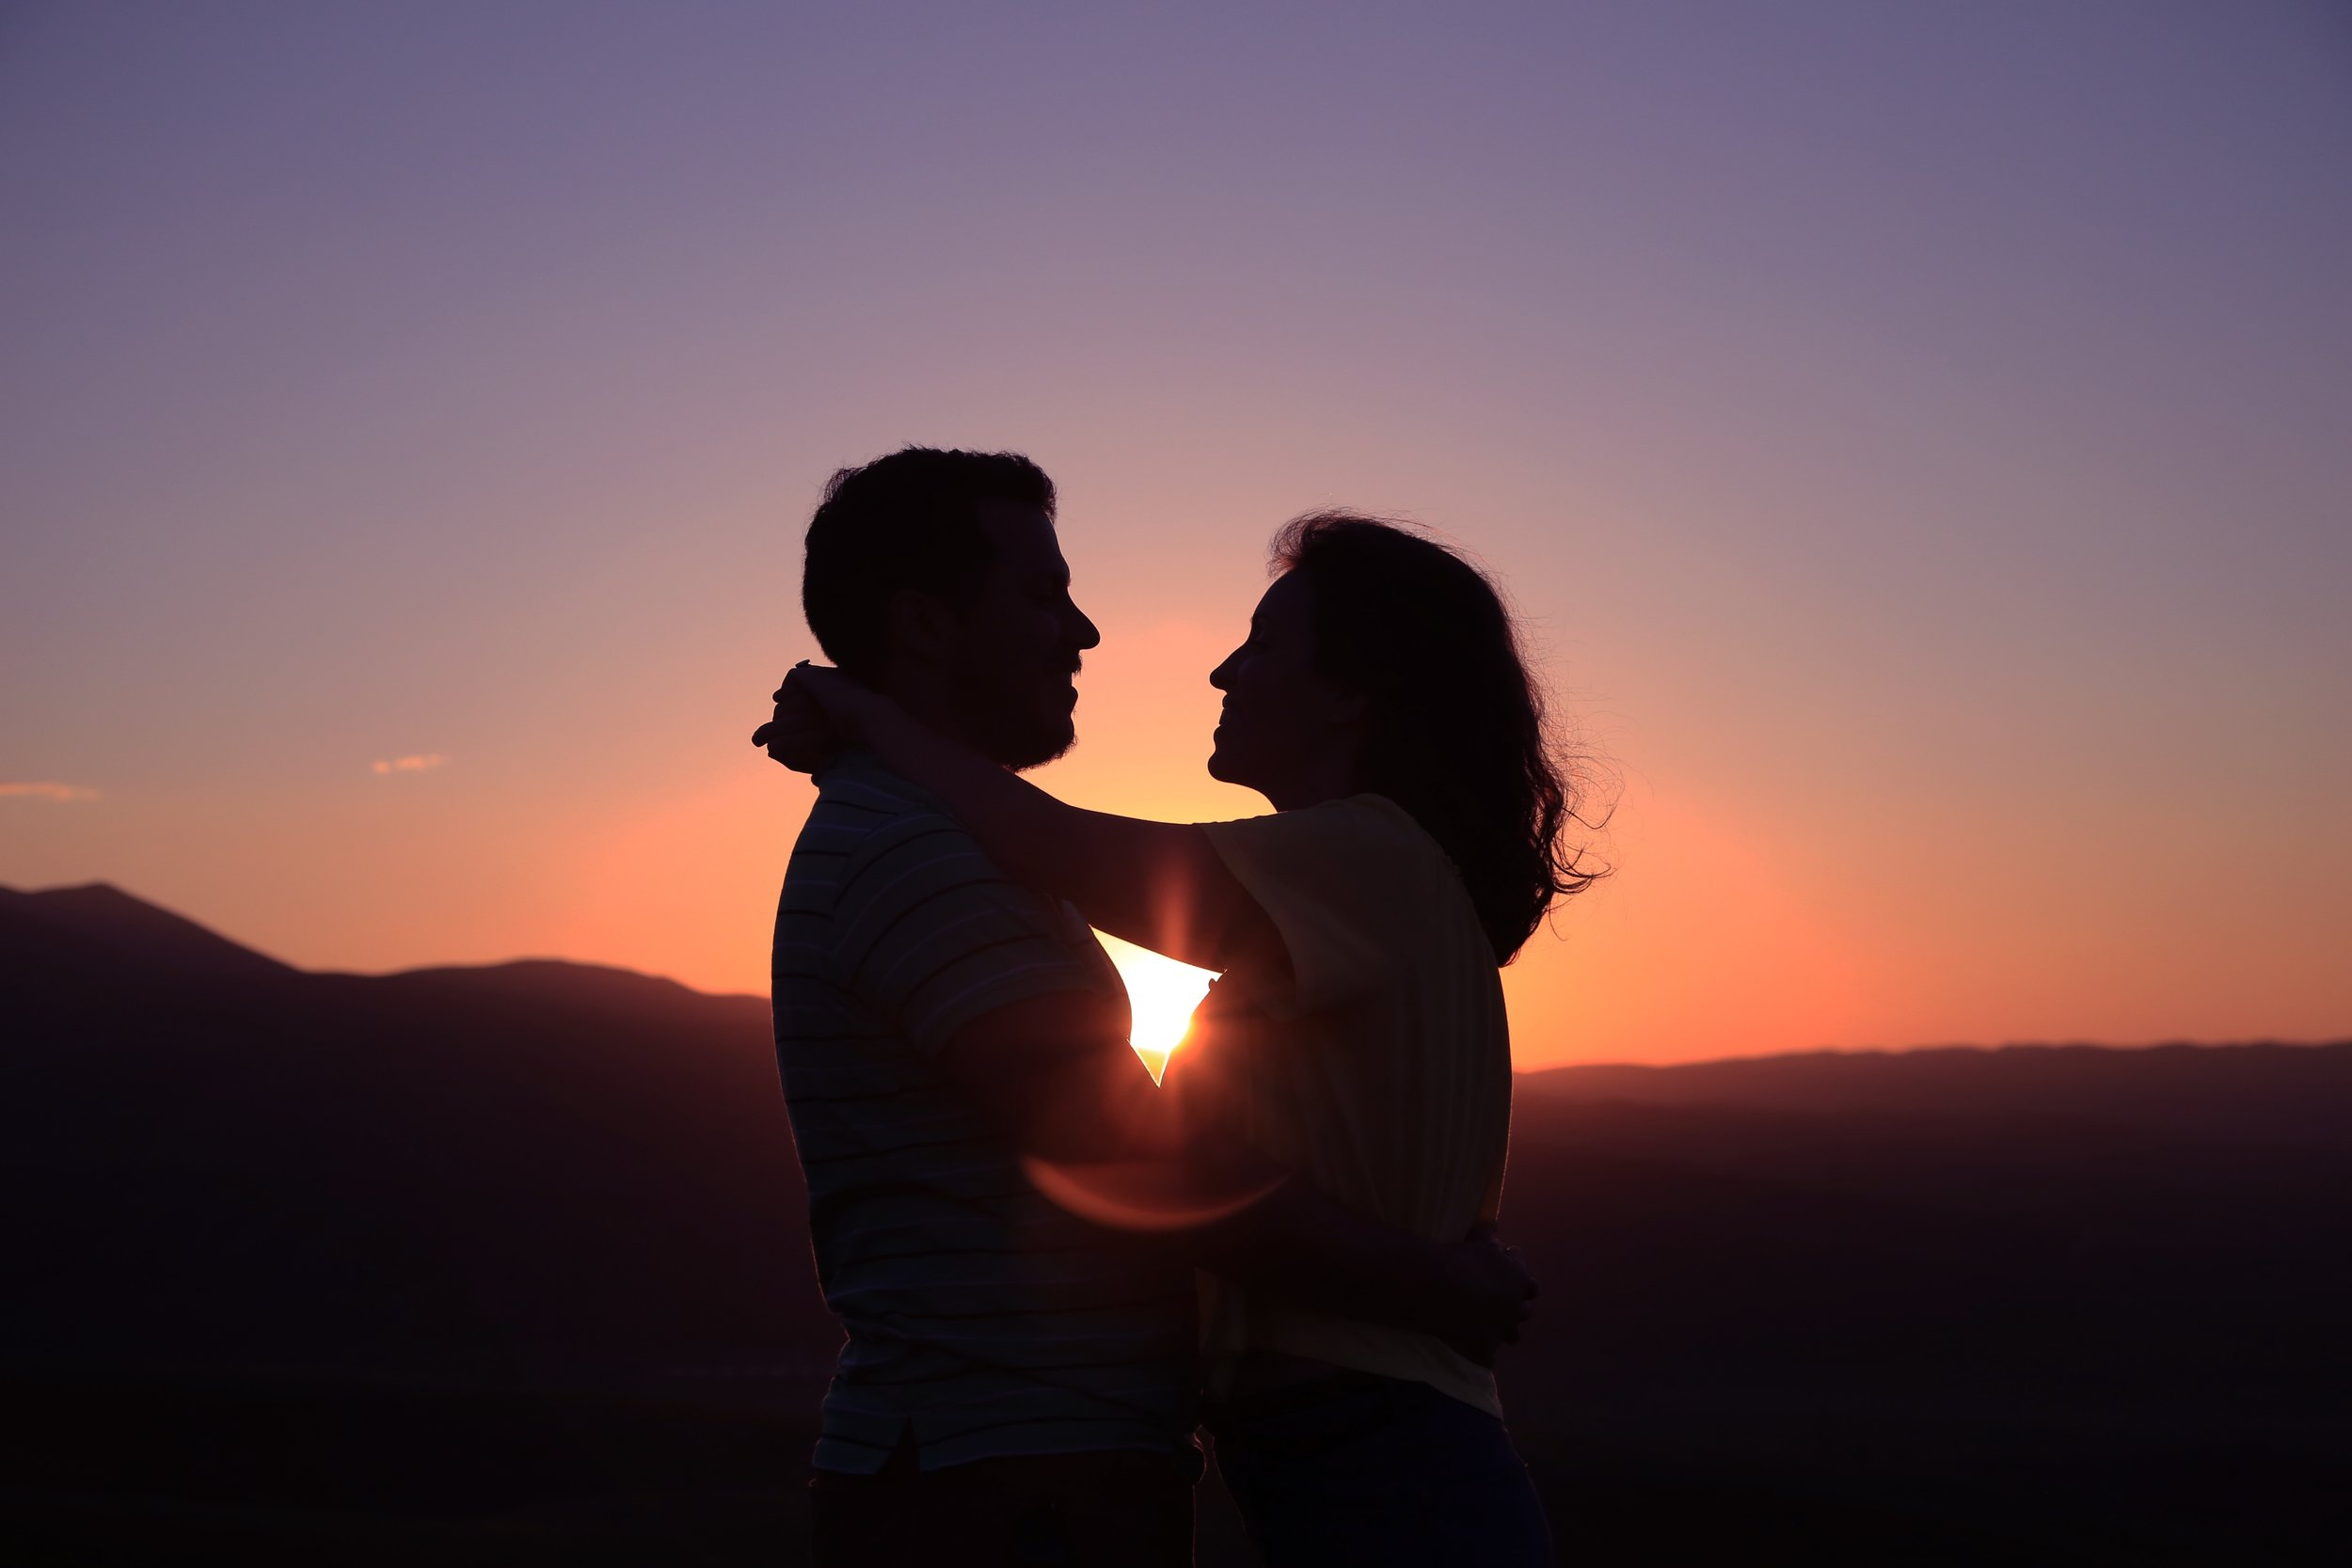 Couple embracing in the sunset. Love.